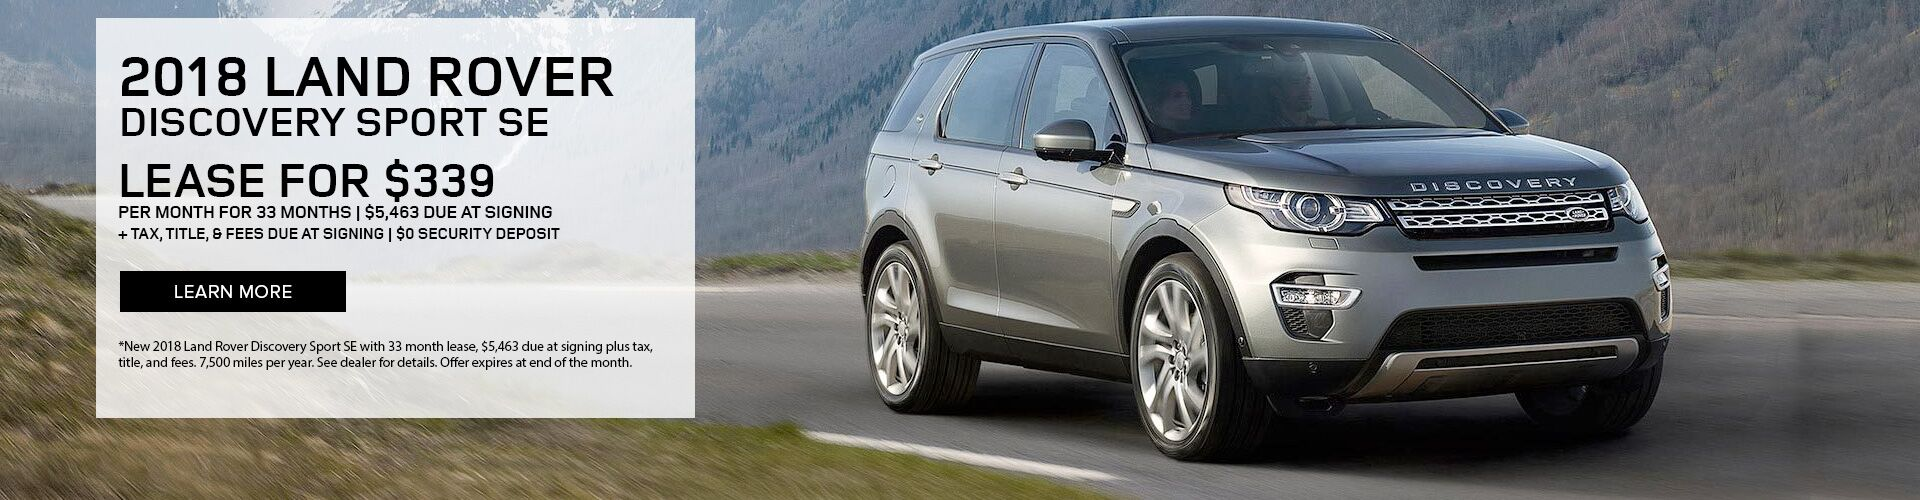 2018 Land Rover Discovery Sport lease special